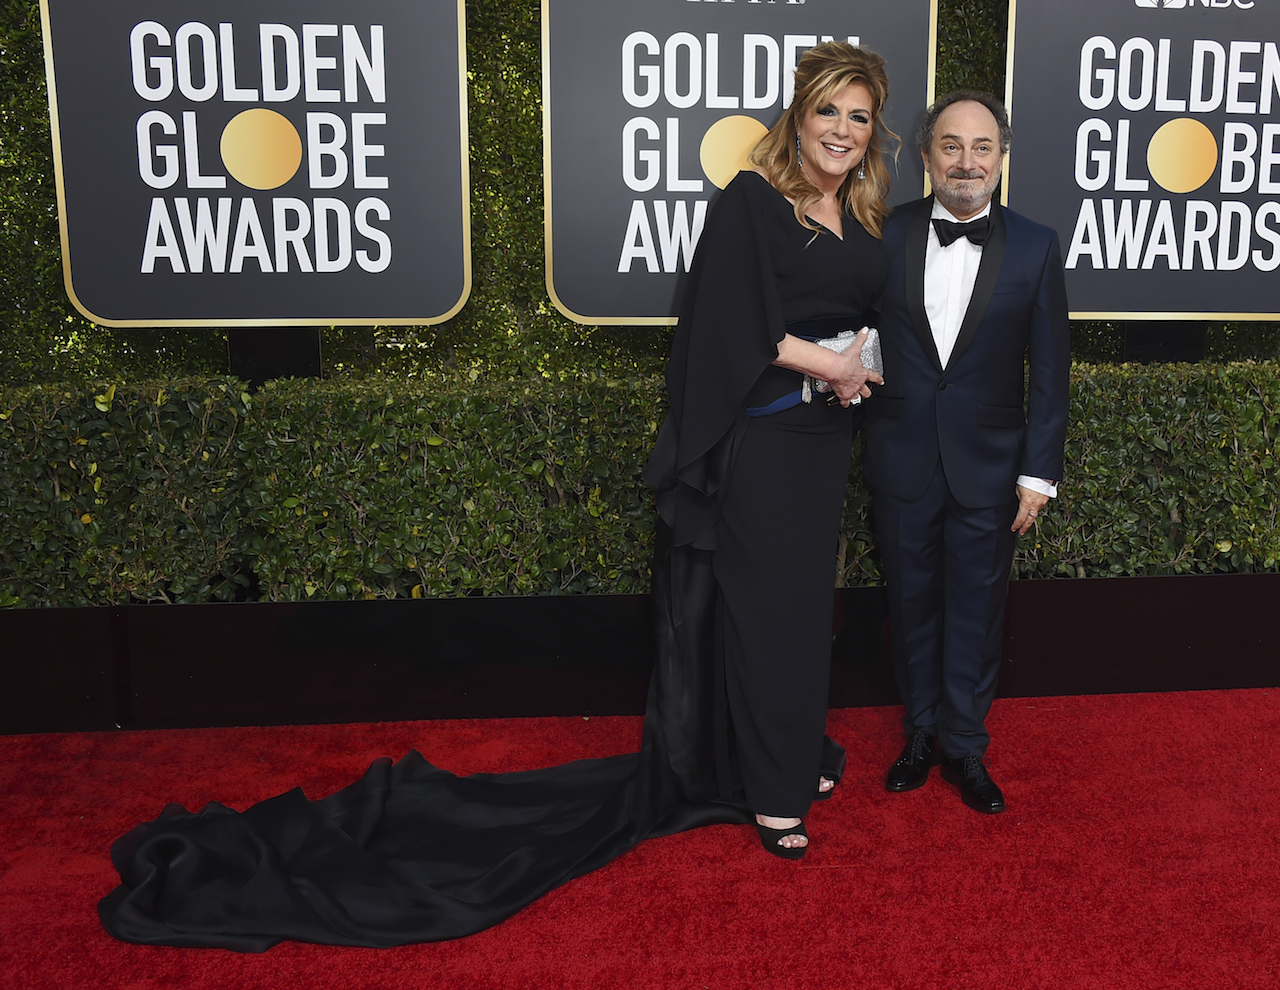 <div class='meta'><div class='origin-logo' data-origin='AP'></div><span class='caption-text' data-credit='Jordan Strauss/Invision/AP'>Caroline Aaron, left, and Kevin Pollak arrive at the 76th annual Golden Globe Awards at the Beverly Hilton Hotel on Sunday, Jan. 6, 2019, in Beverly Hills, Calif.</span></div>